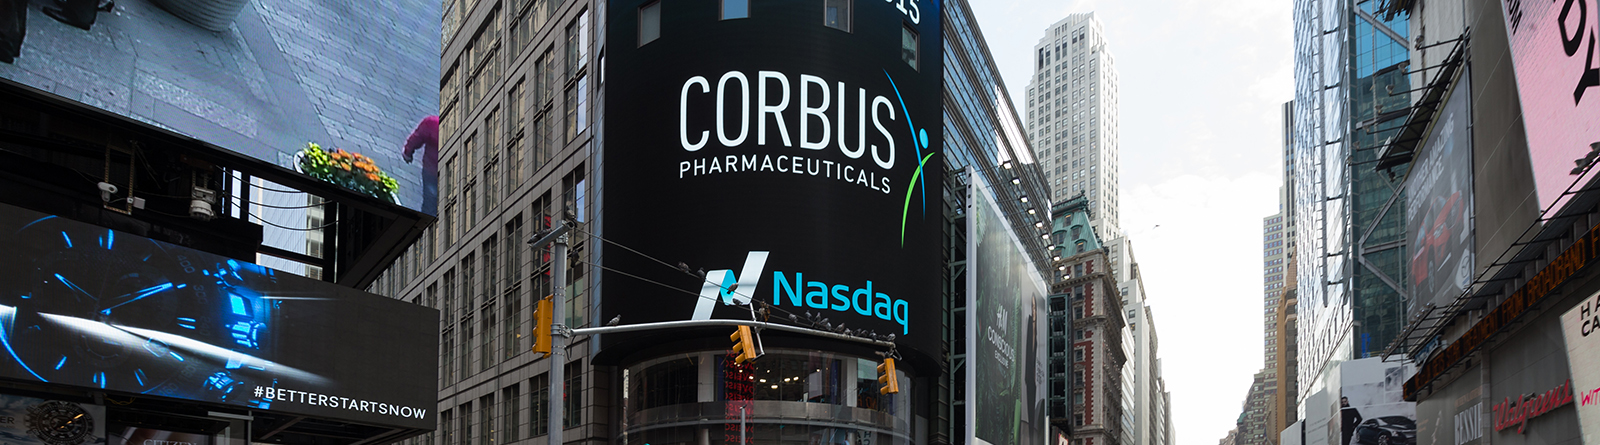 Corbus Pharmaceuticals Appoints Charles N. Serhan, Ph.D., to Scientific Advisory Board Banner